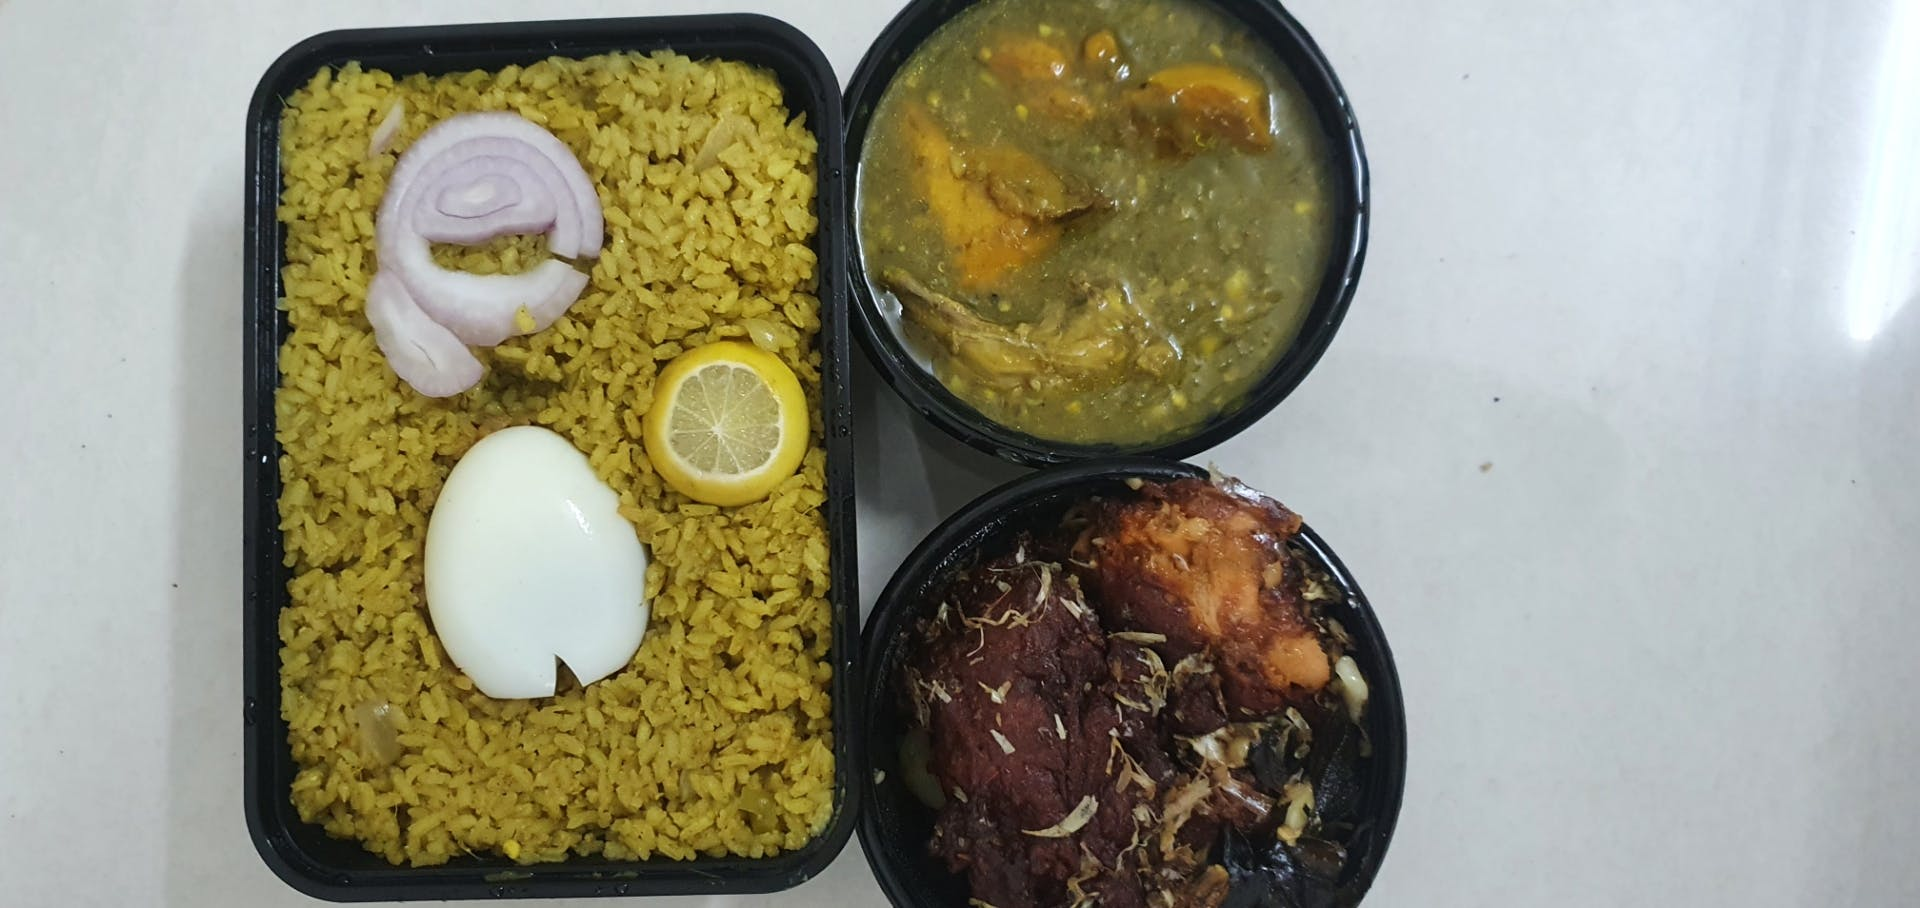 Dish,Cuisine,Food,Ingredient,Meal,Steamed rice,Lunch,Dal,Rice and curry,Indian cuisine